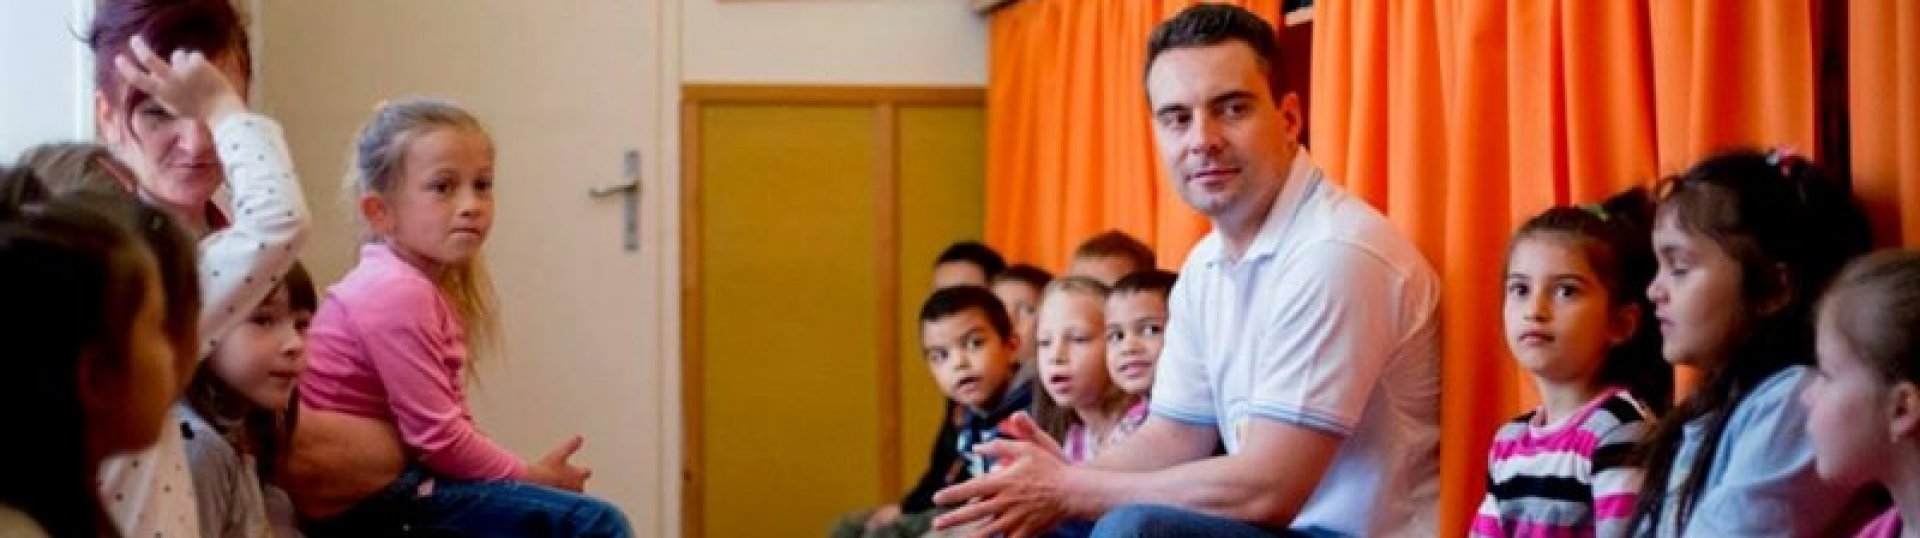 New study: Jobbik going mainstream. Strategy shift of the far-right in Hungary